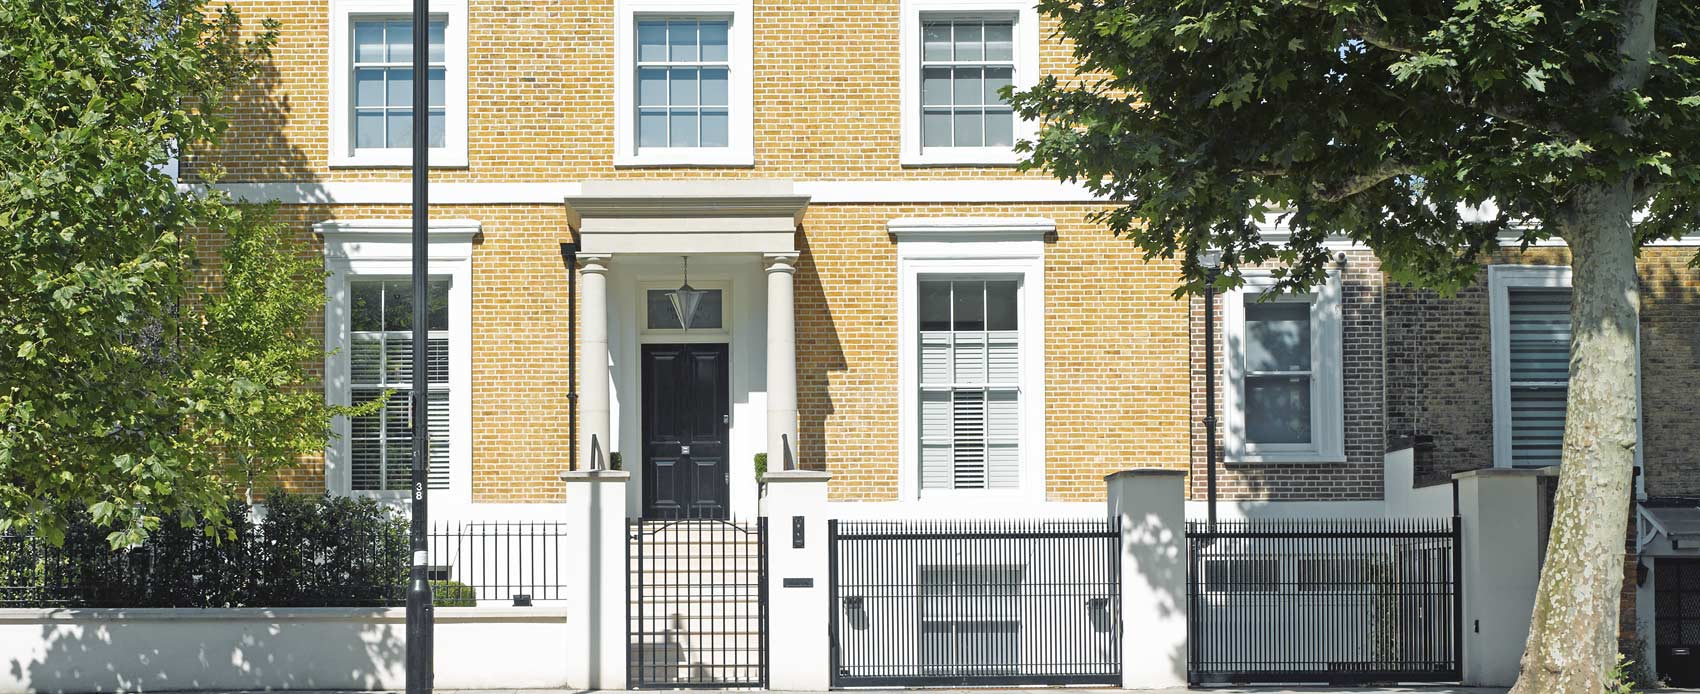 St Johns Wood Robert Bailey Property Spears 500 Independent Buying Agency London